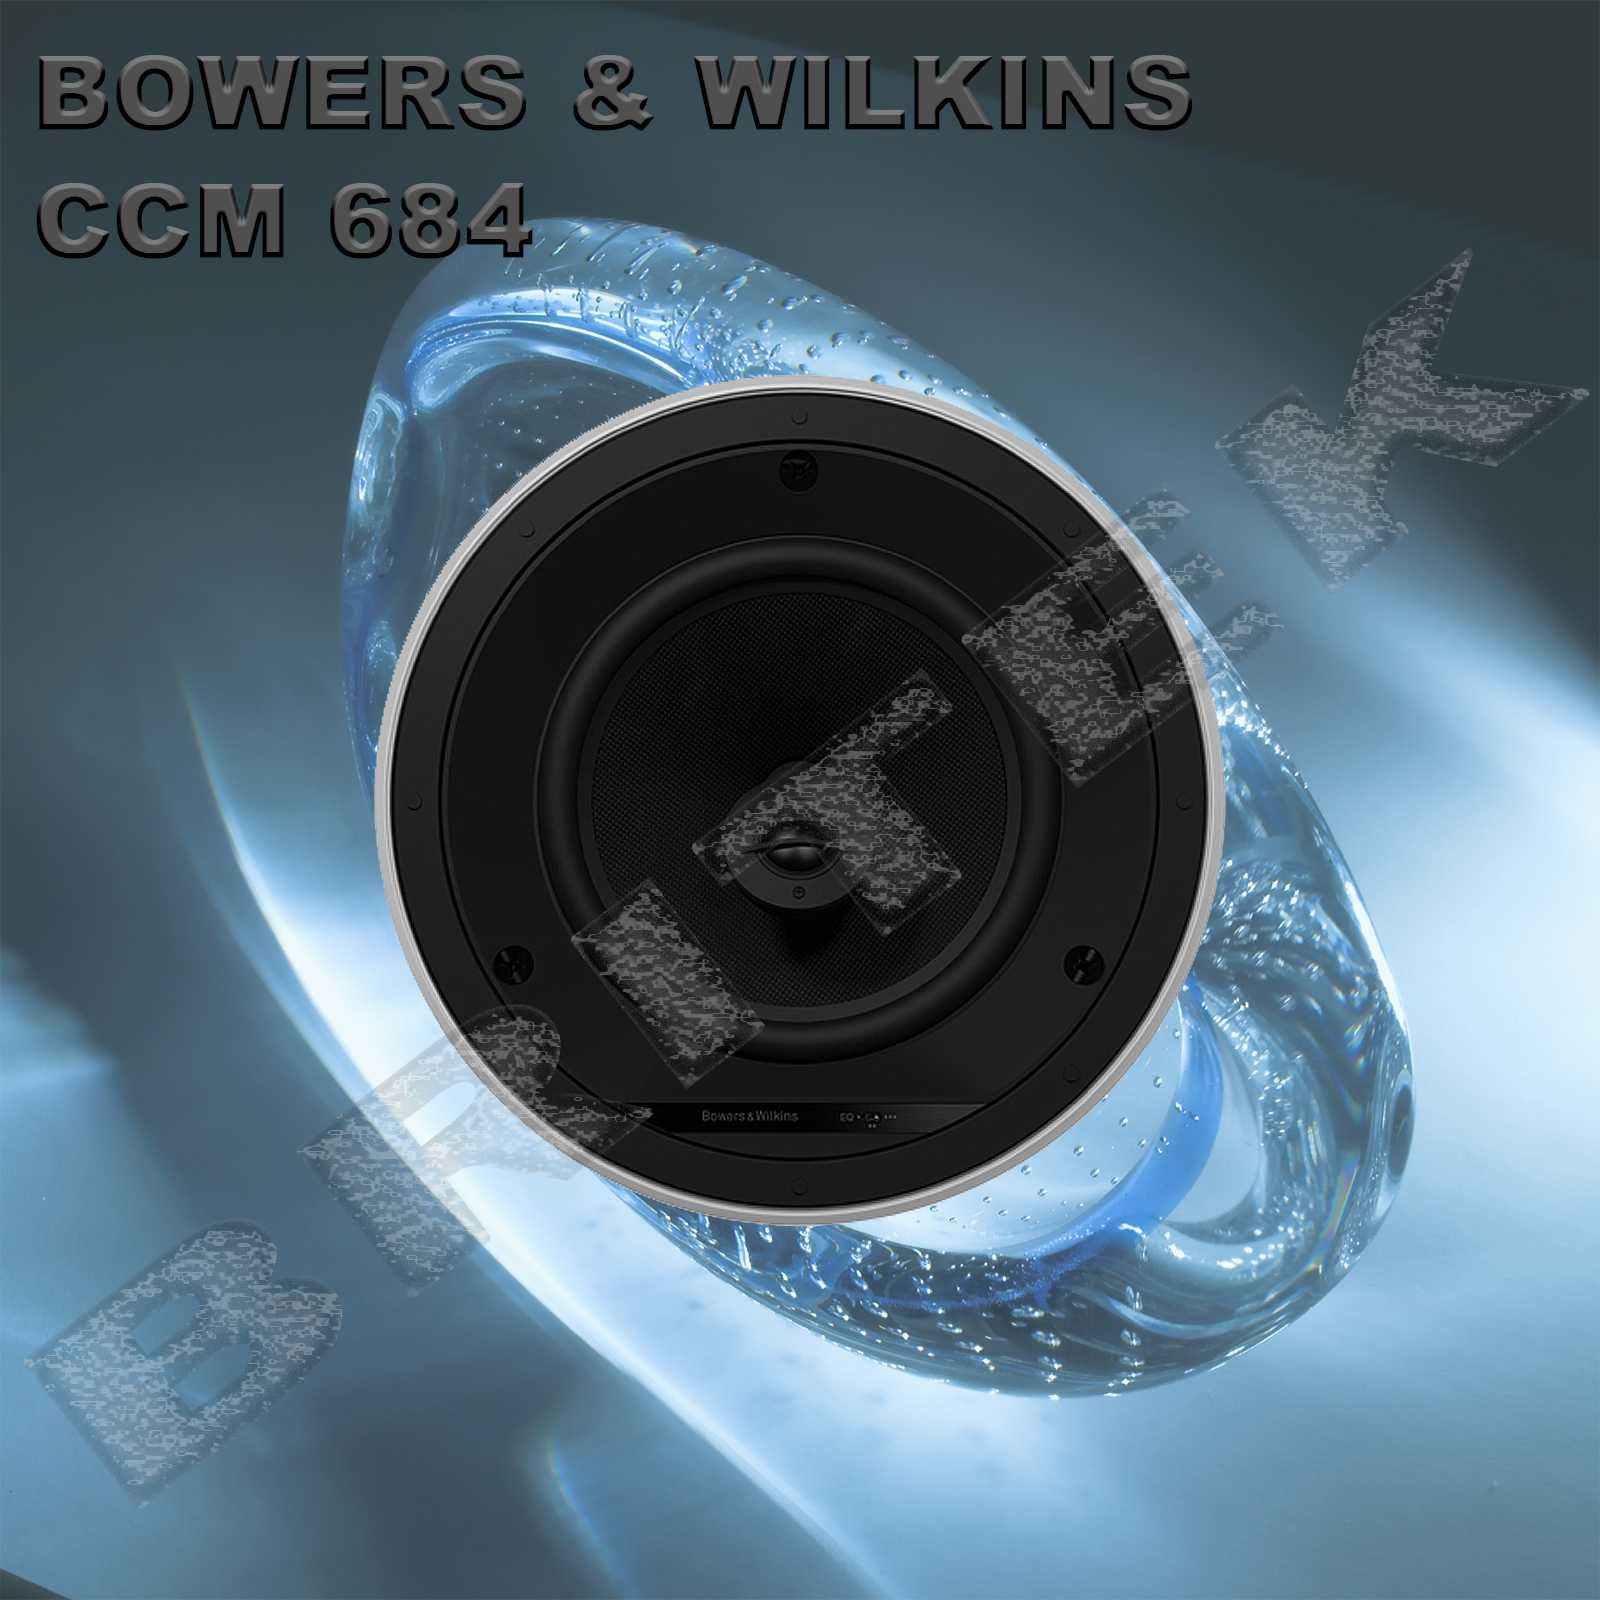 Bowers & Wilkins CCM 684